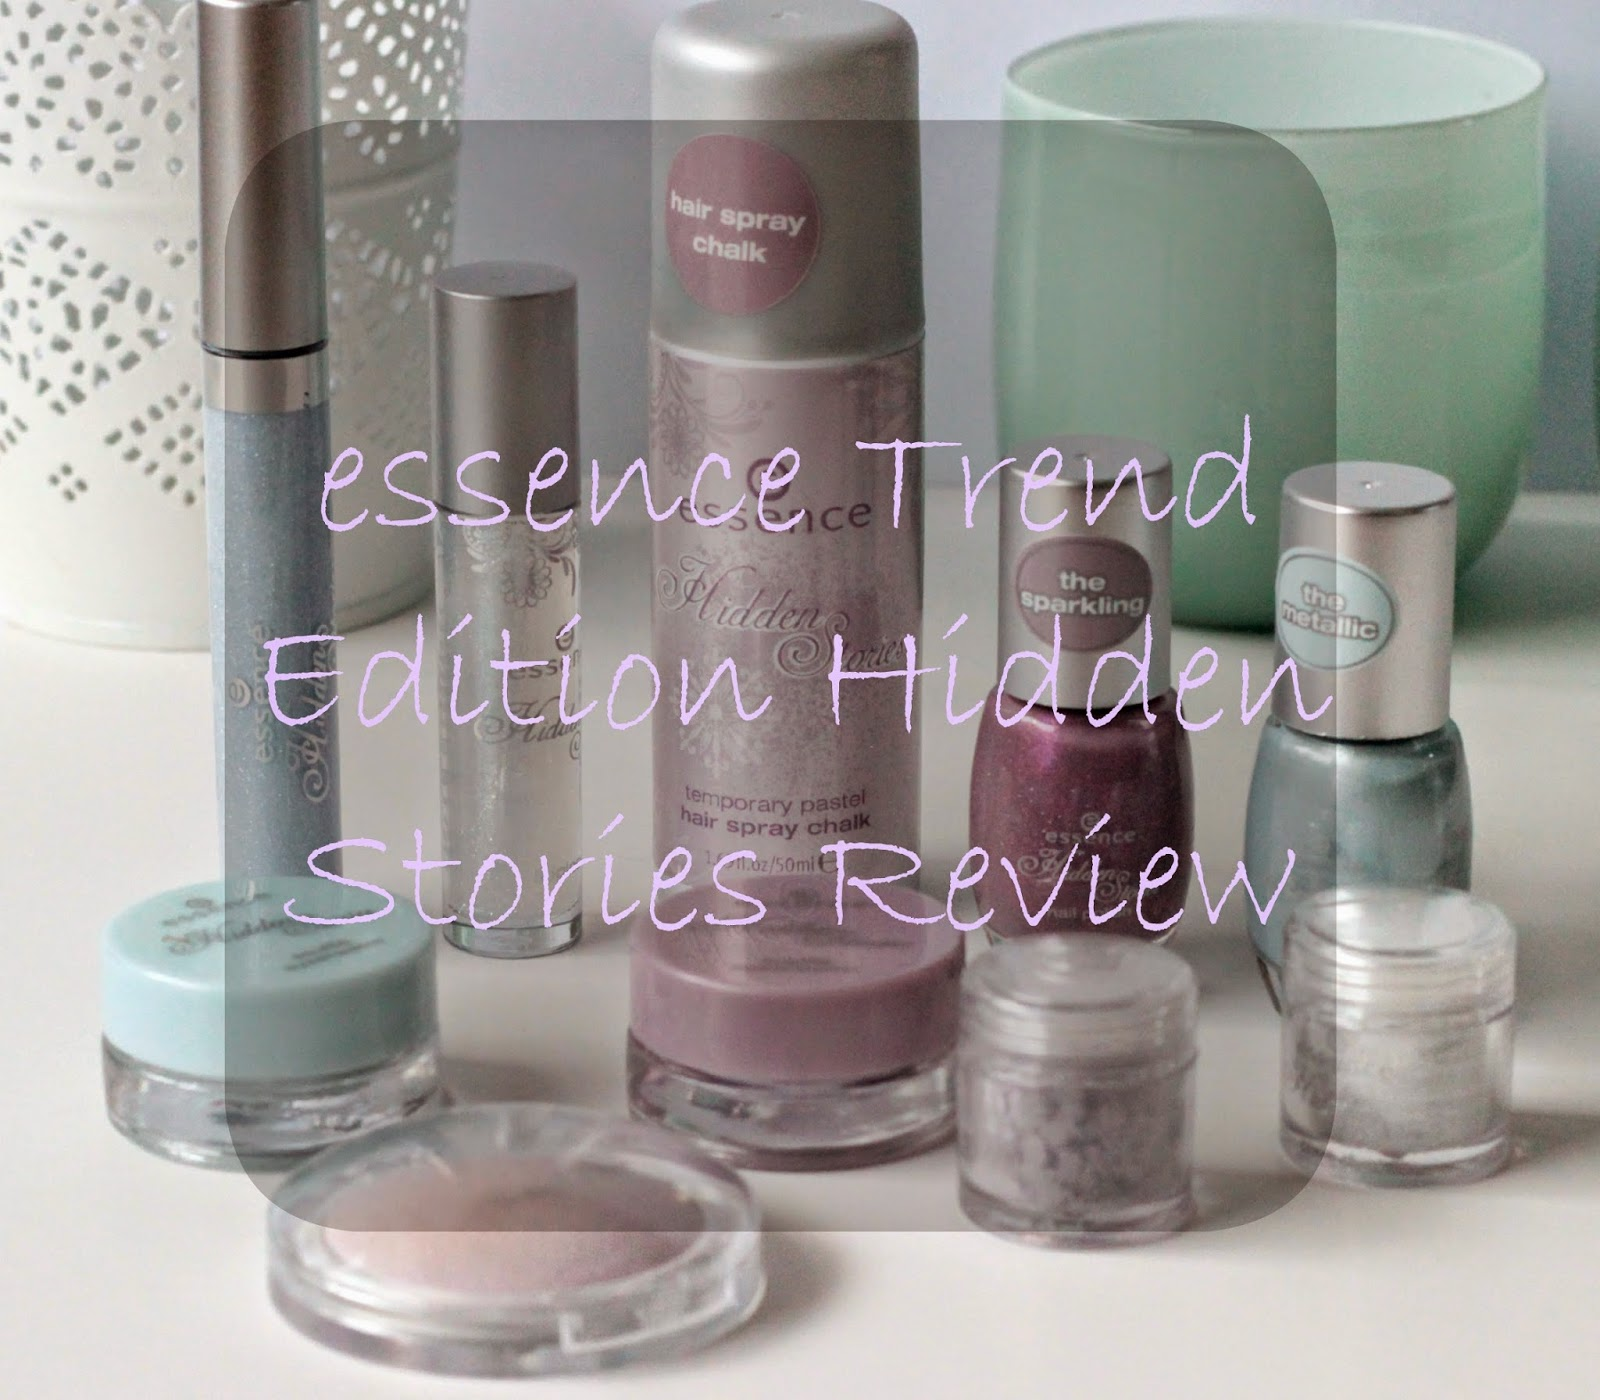 essence Trend Edition Hidden Stories